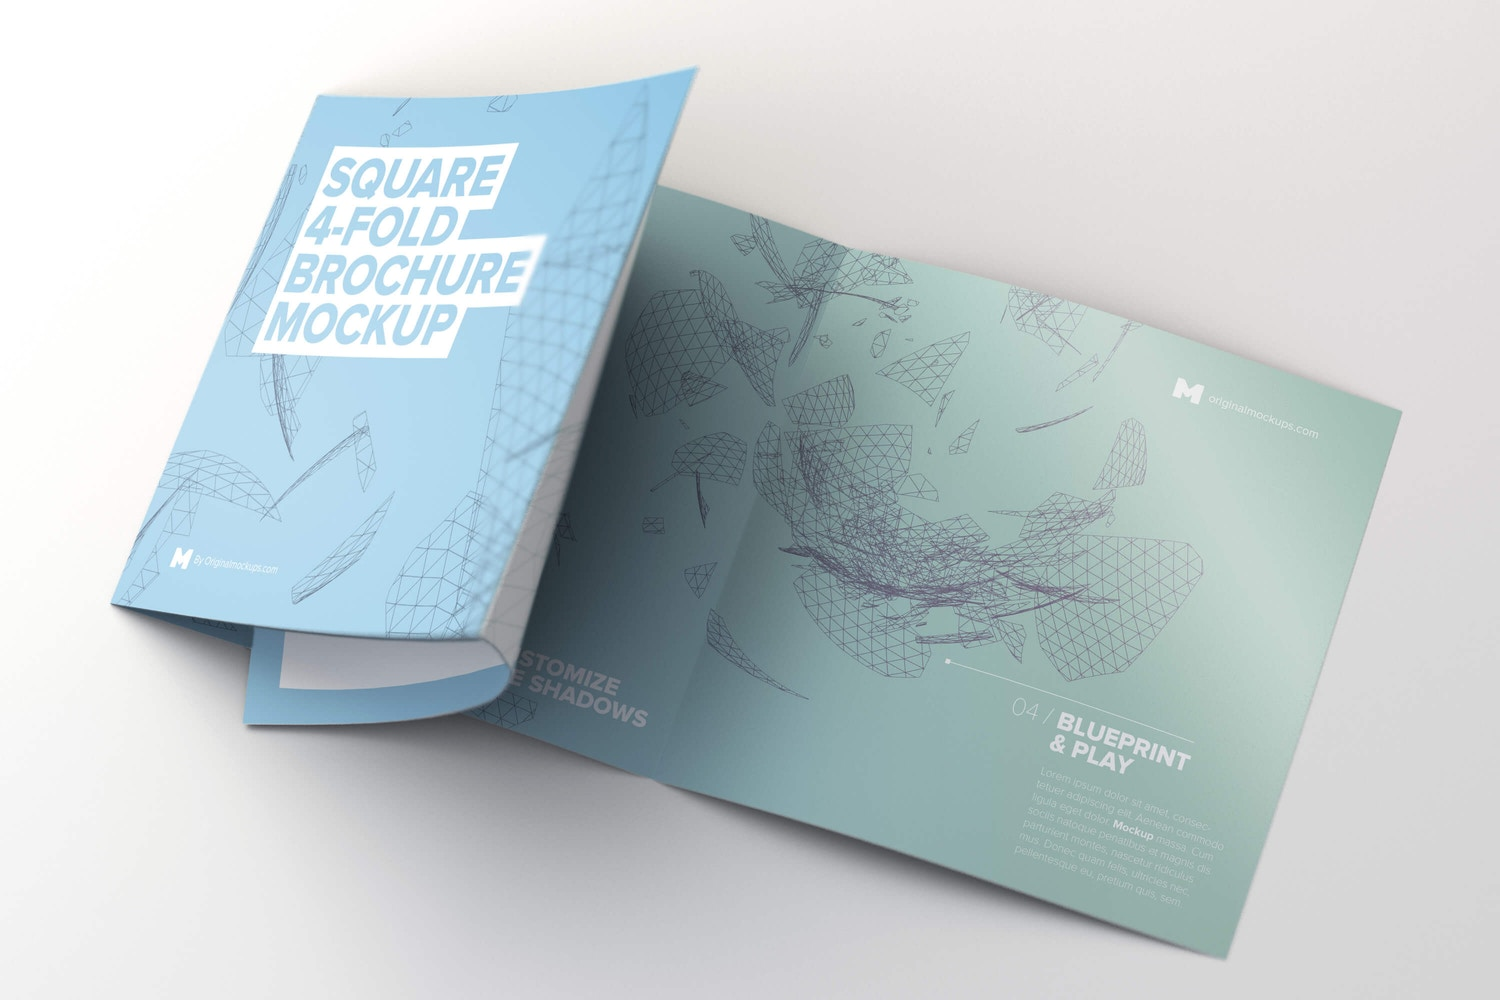 Unfolding Square 4 Fold Brochure Mockup By Original Mockups On